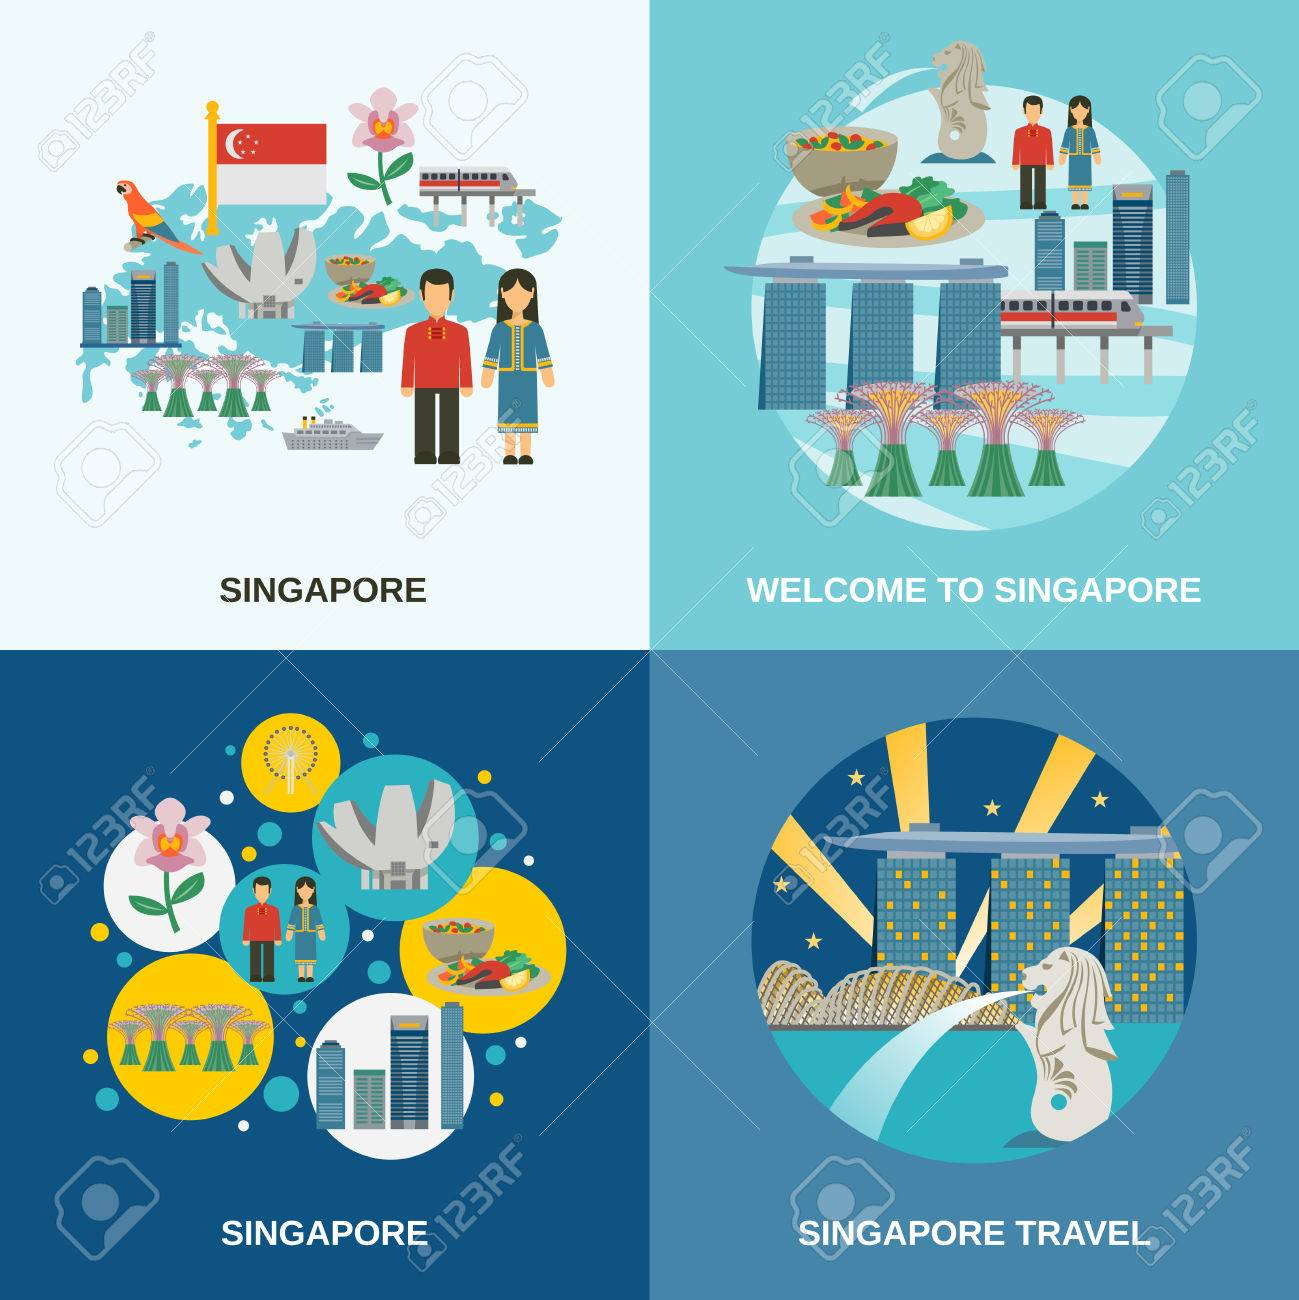 Tourist attractions in Singapore 4 flat icons composition poster with cultural symbols pictograms abstract isolated vector illustration Stock Vector - 72884778